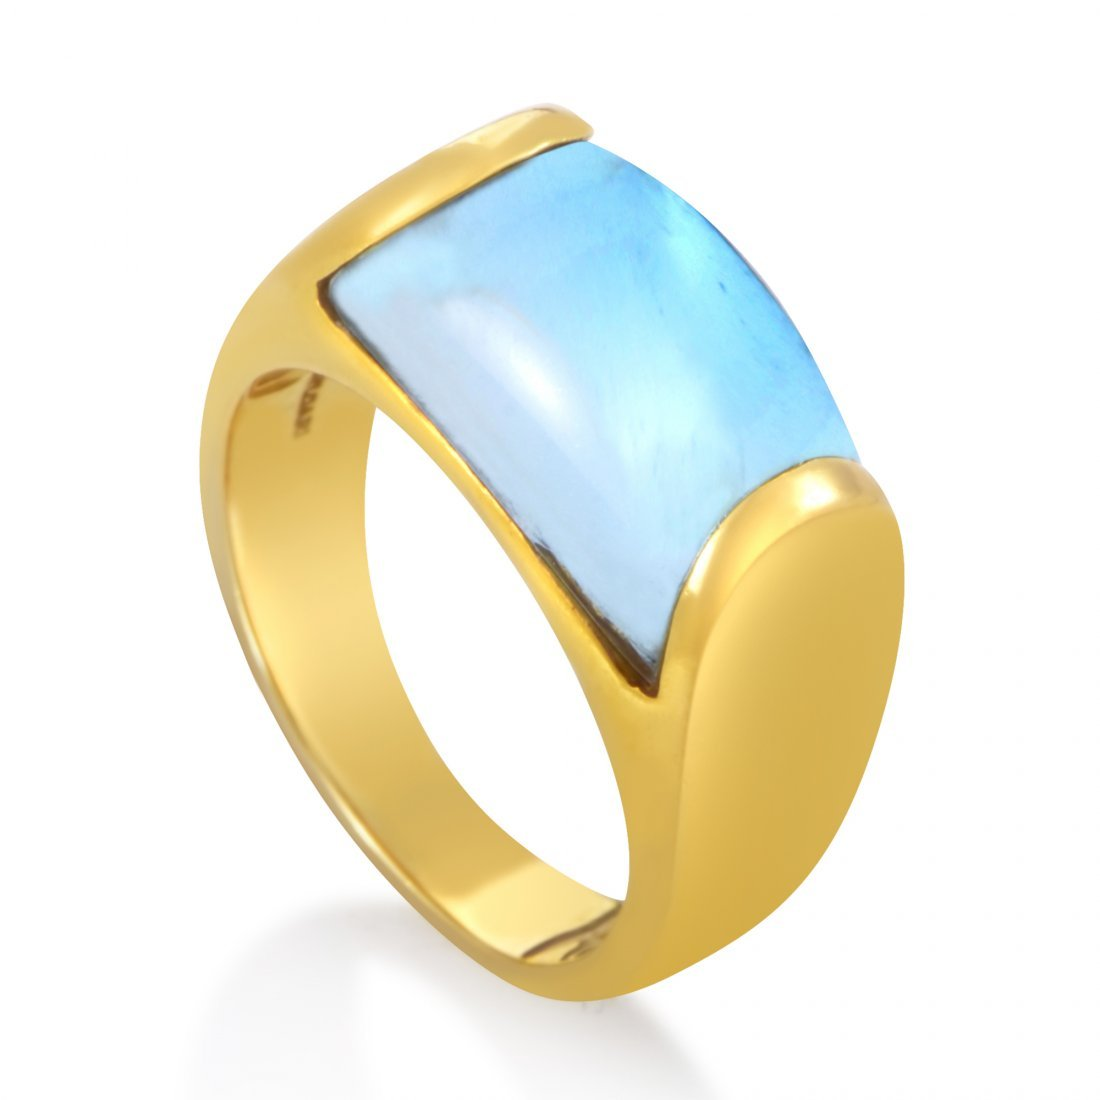 Bvlgari Tronchetto 18K Yellow Gold Blue Topaz Ring